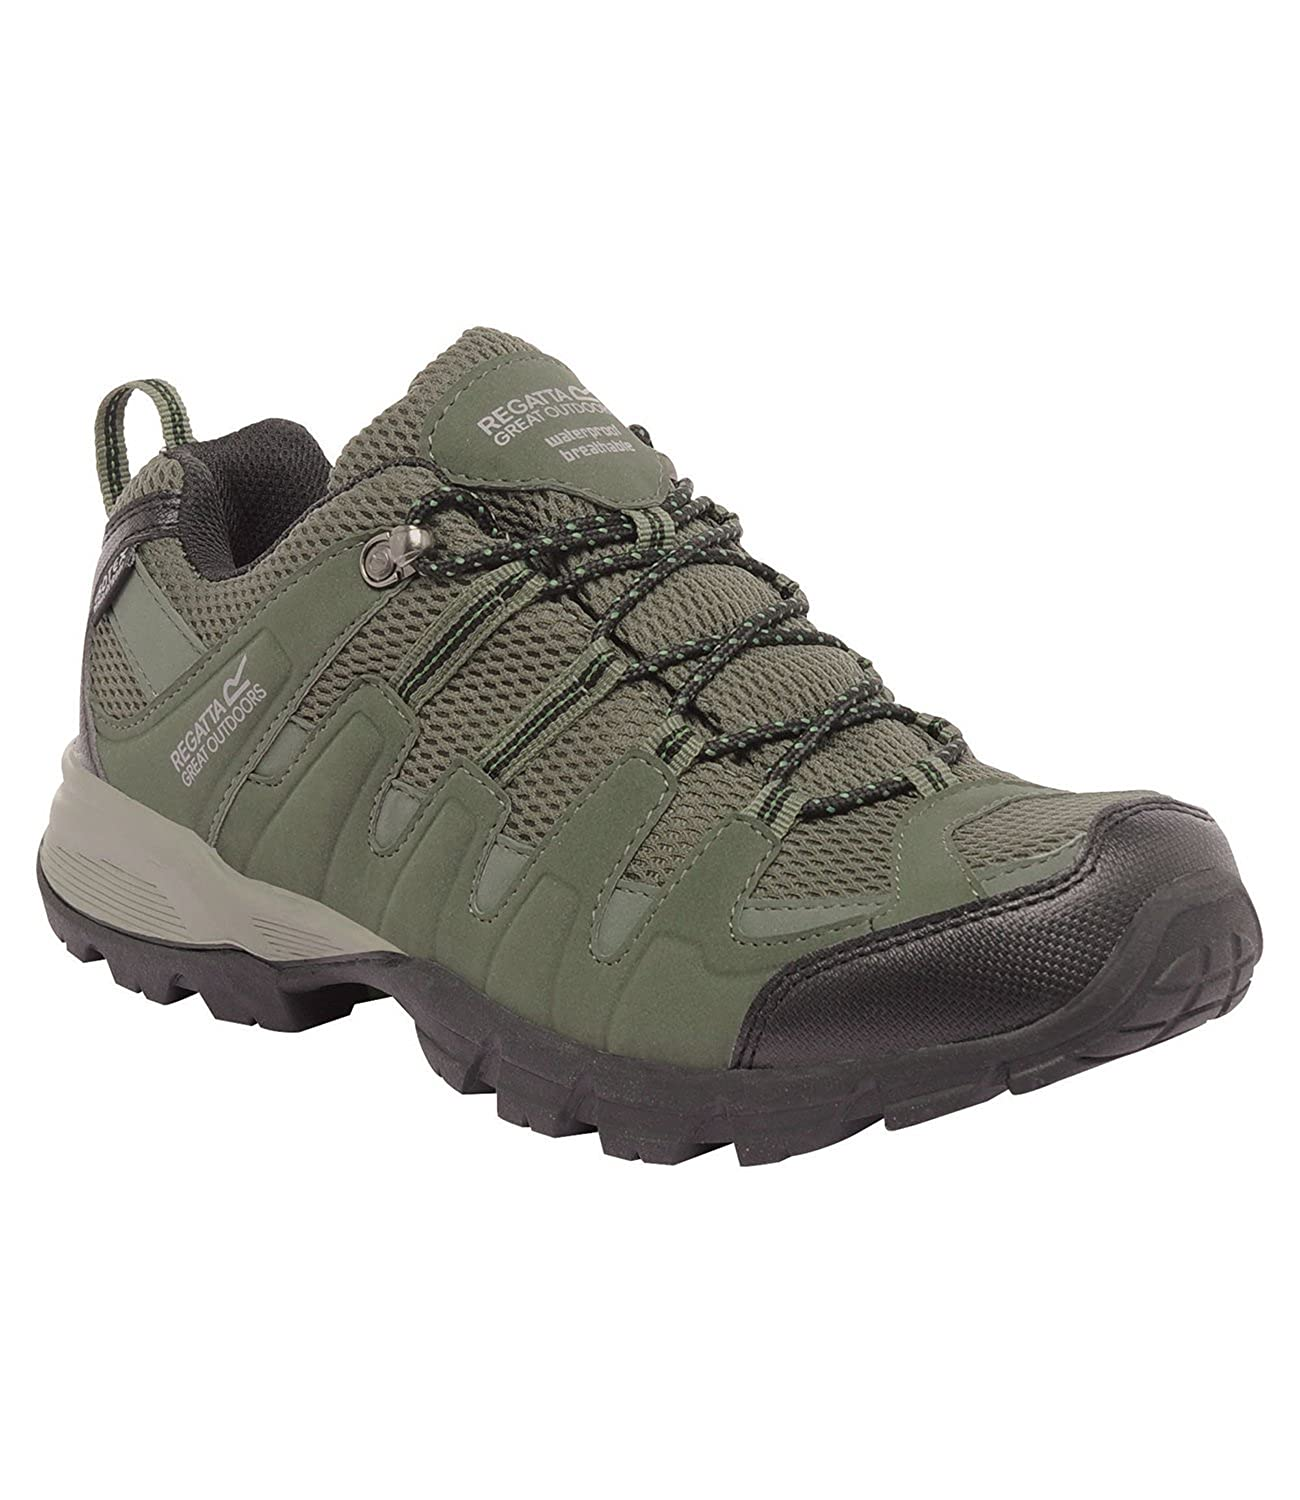 Regatta Men's Garsdale Low Trail & Travel Walking Shoes